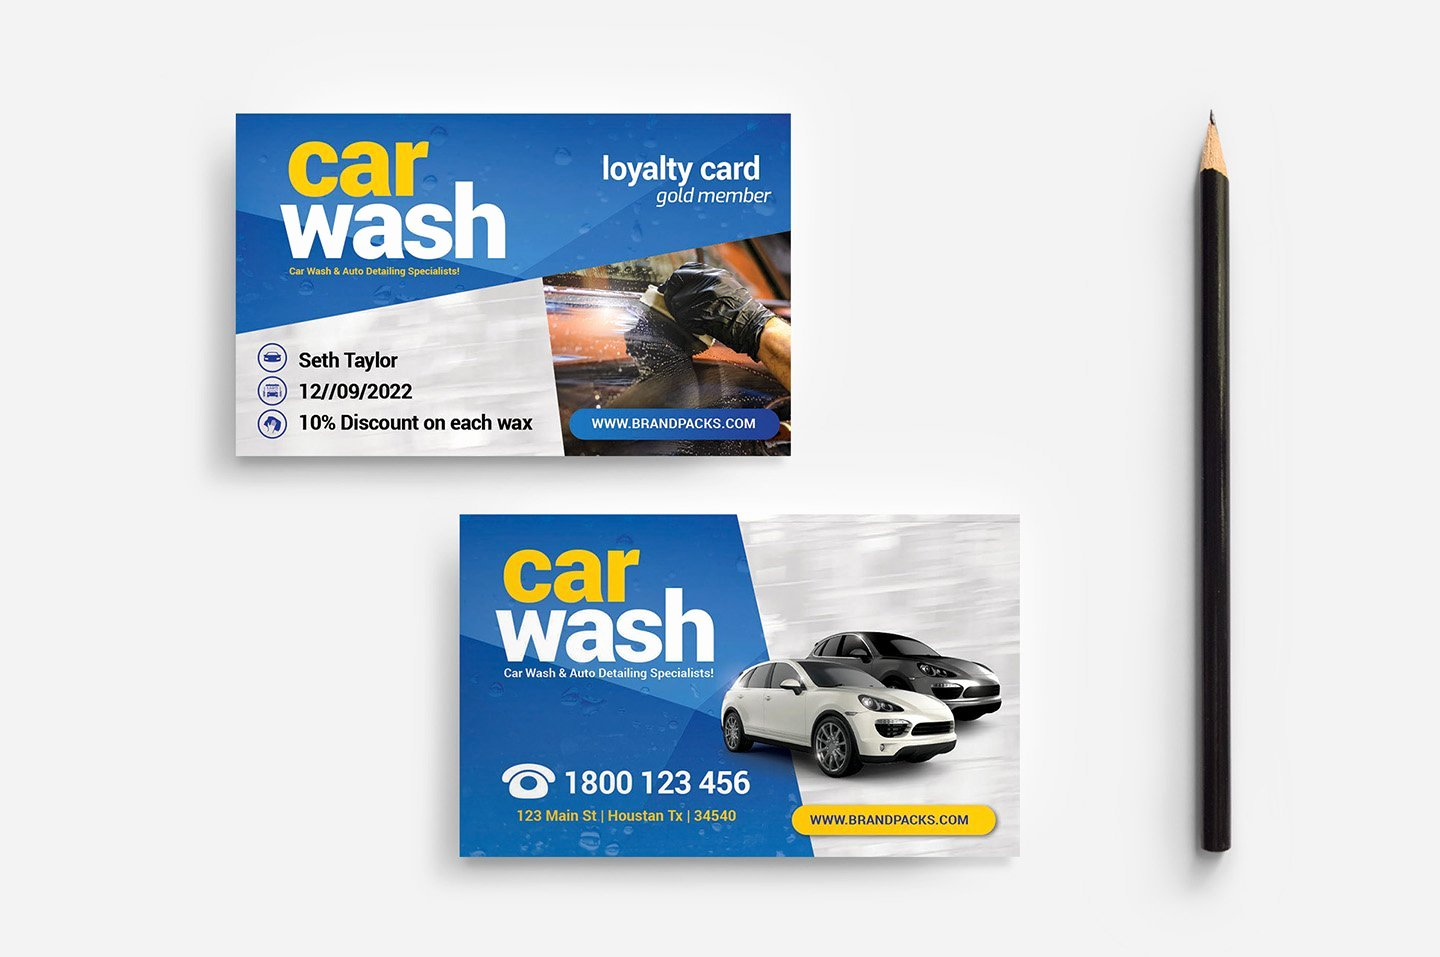 Car Wash Business Cards Inspirational Car Wash Business Card Template Business Card Templates Creative Market